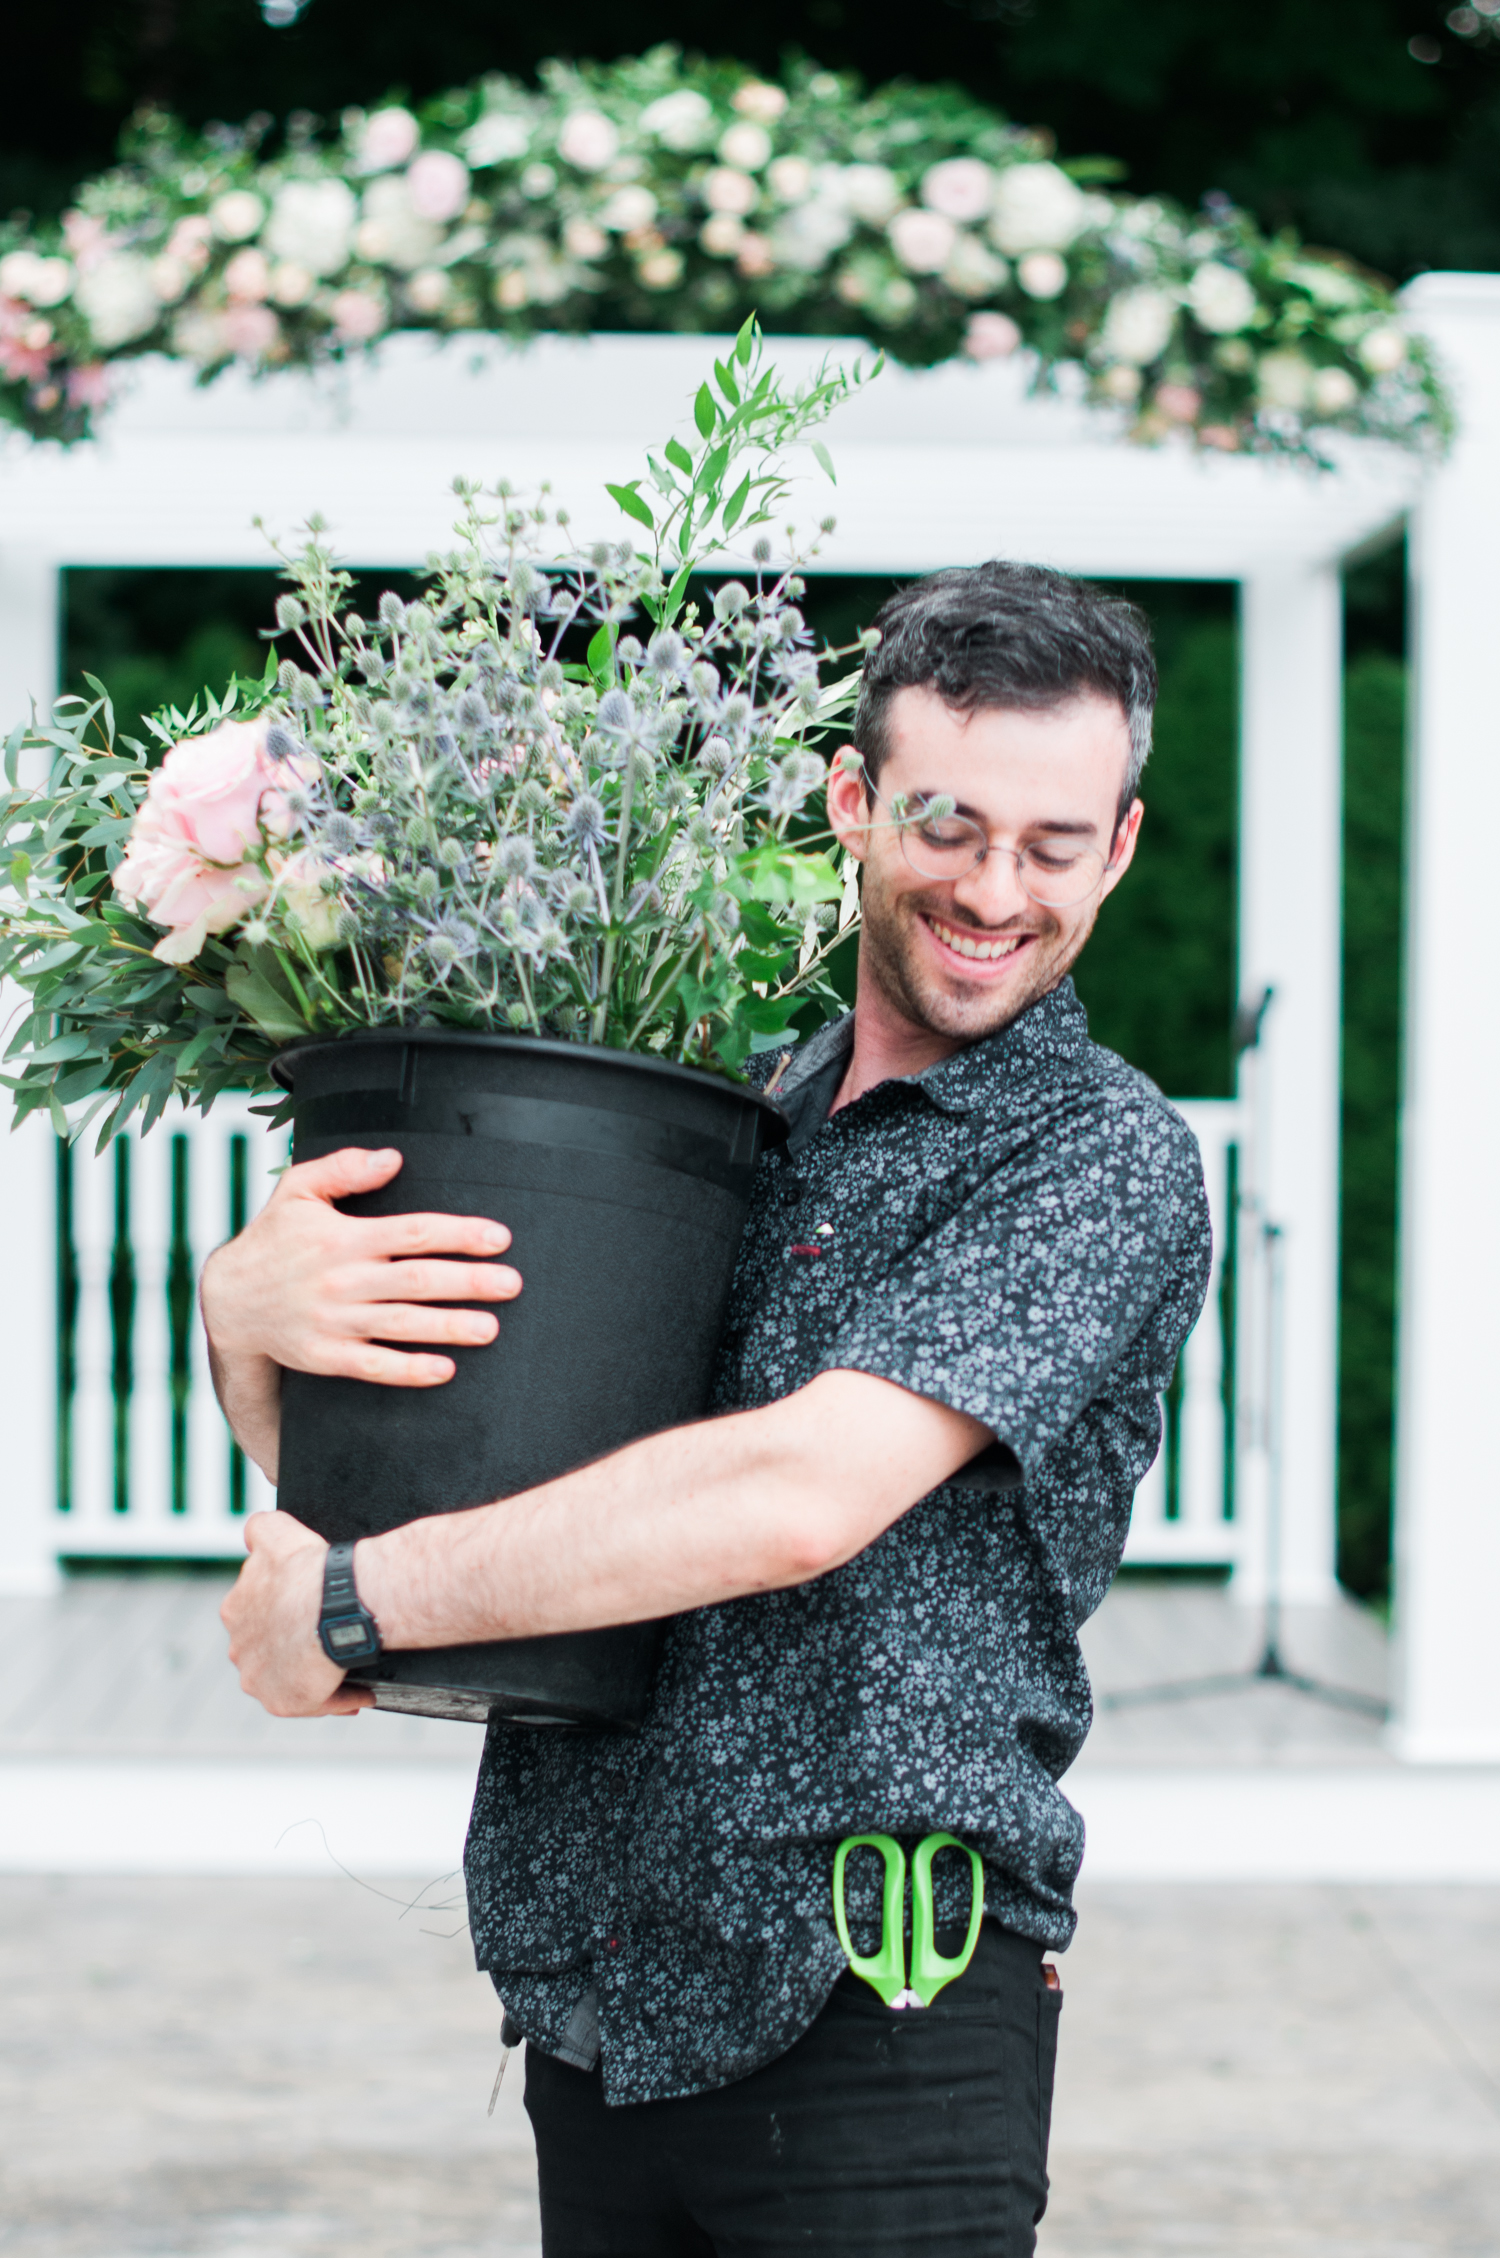 Ephemera Designs employee holding bucket of flowers & greenery